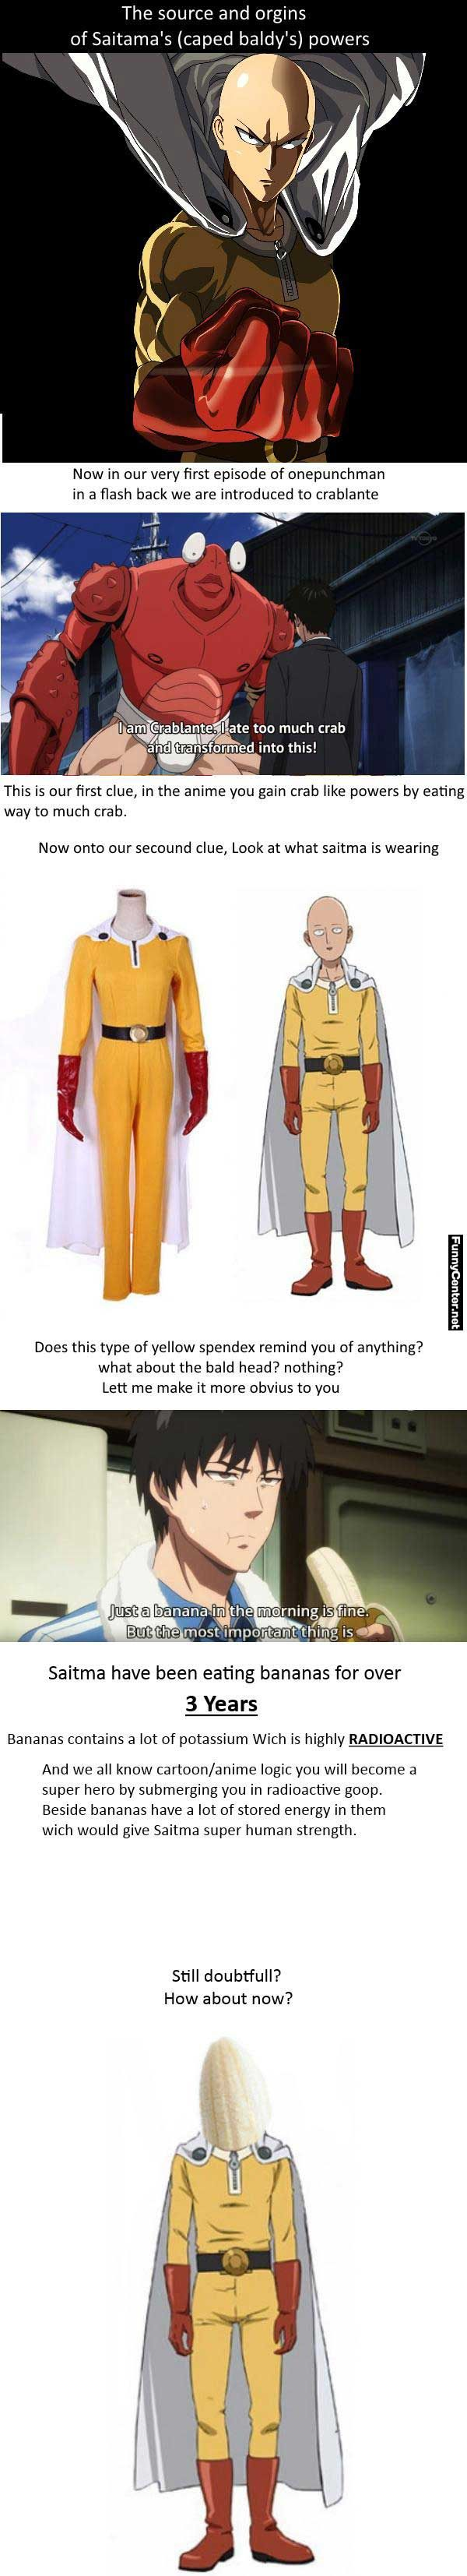 They might be on to something Secret Of Saitama's Powers - One Punch Man